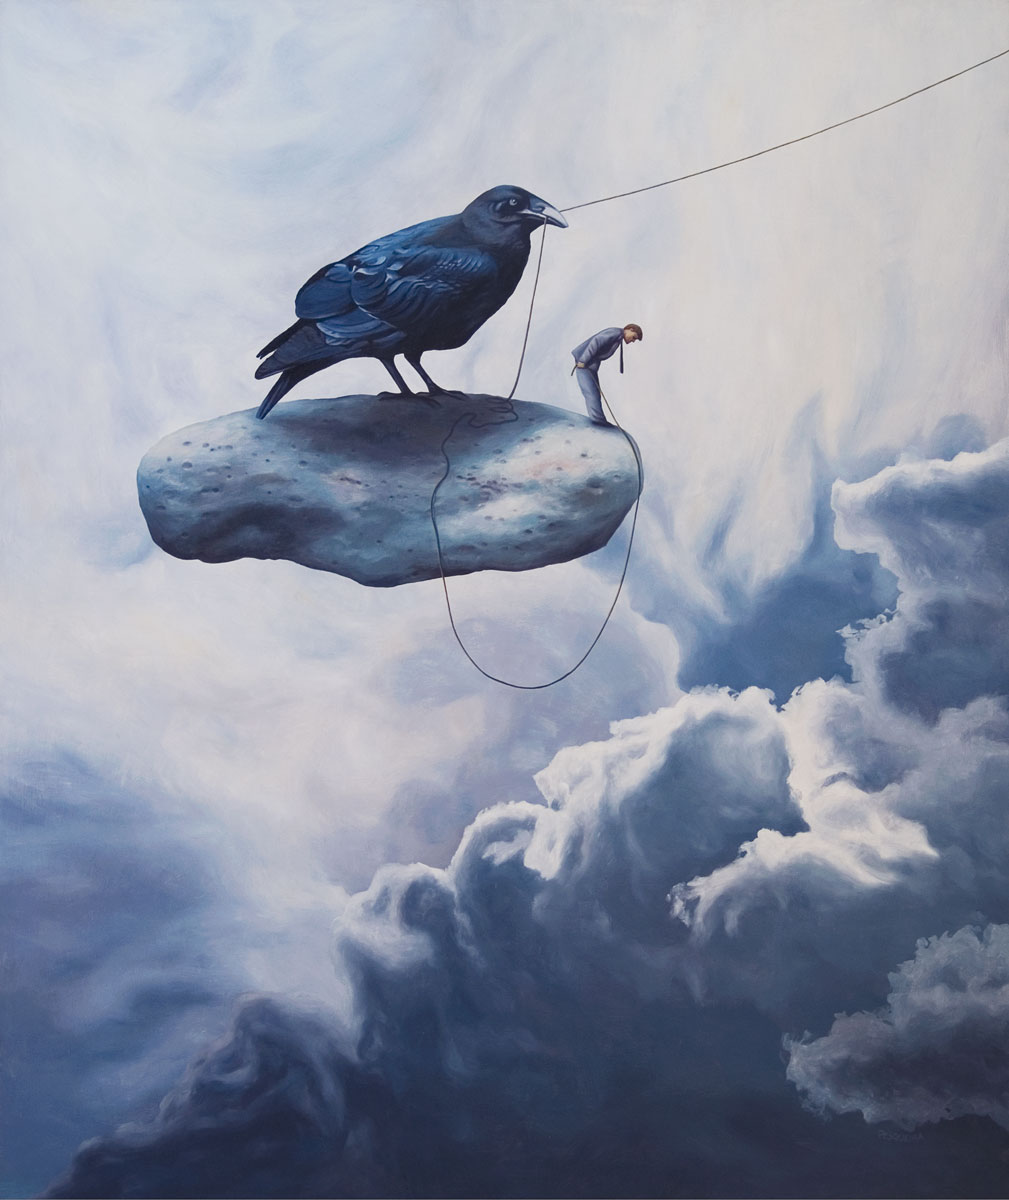 Unexpected Departure, painting of a man and a raven bird standing on stone floating in the sky, art about 9-11, september 11, world trade center,ruble, art with raven crow blackbird, death, sudden, afterlife, trompe l'oeil,soulful uplifting inspirational art, soul stirring illusion art, romantic art, painting of clouds, surrealism, surreal art, dreamlike imagery, fanciful art, fantasy art, dreamscape visual, metaphysical art, spiritual painting, metaphysical painting, spiritual art, whimsical art, whimsy art, dream art, fantastic realism art, limited edition giclee, signed art print, fine art reproduction, original magic realism oil painting by Paul Bond